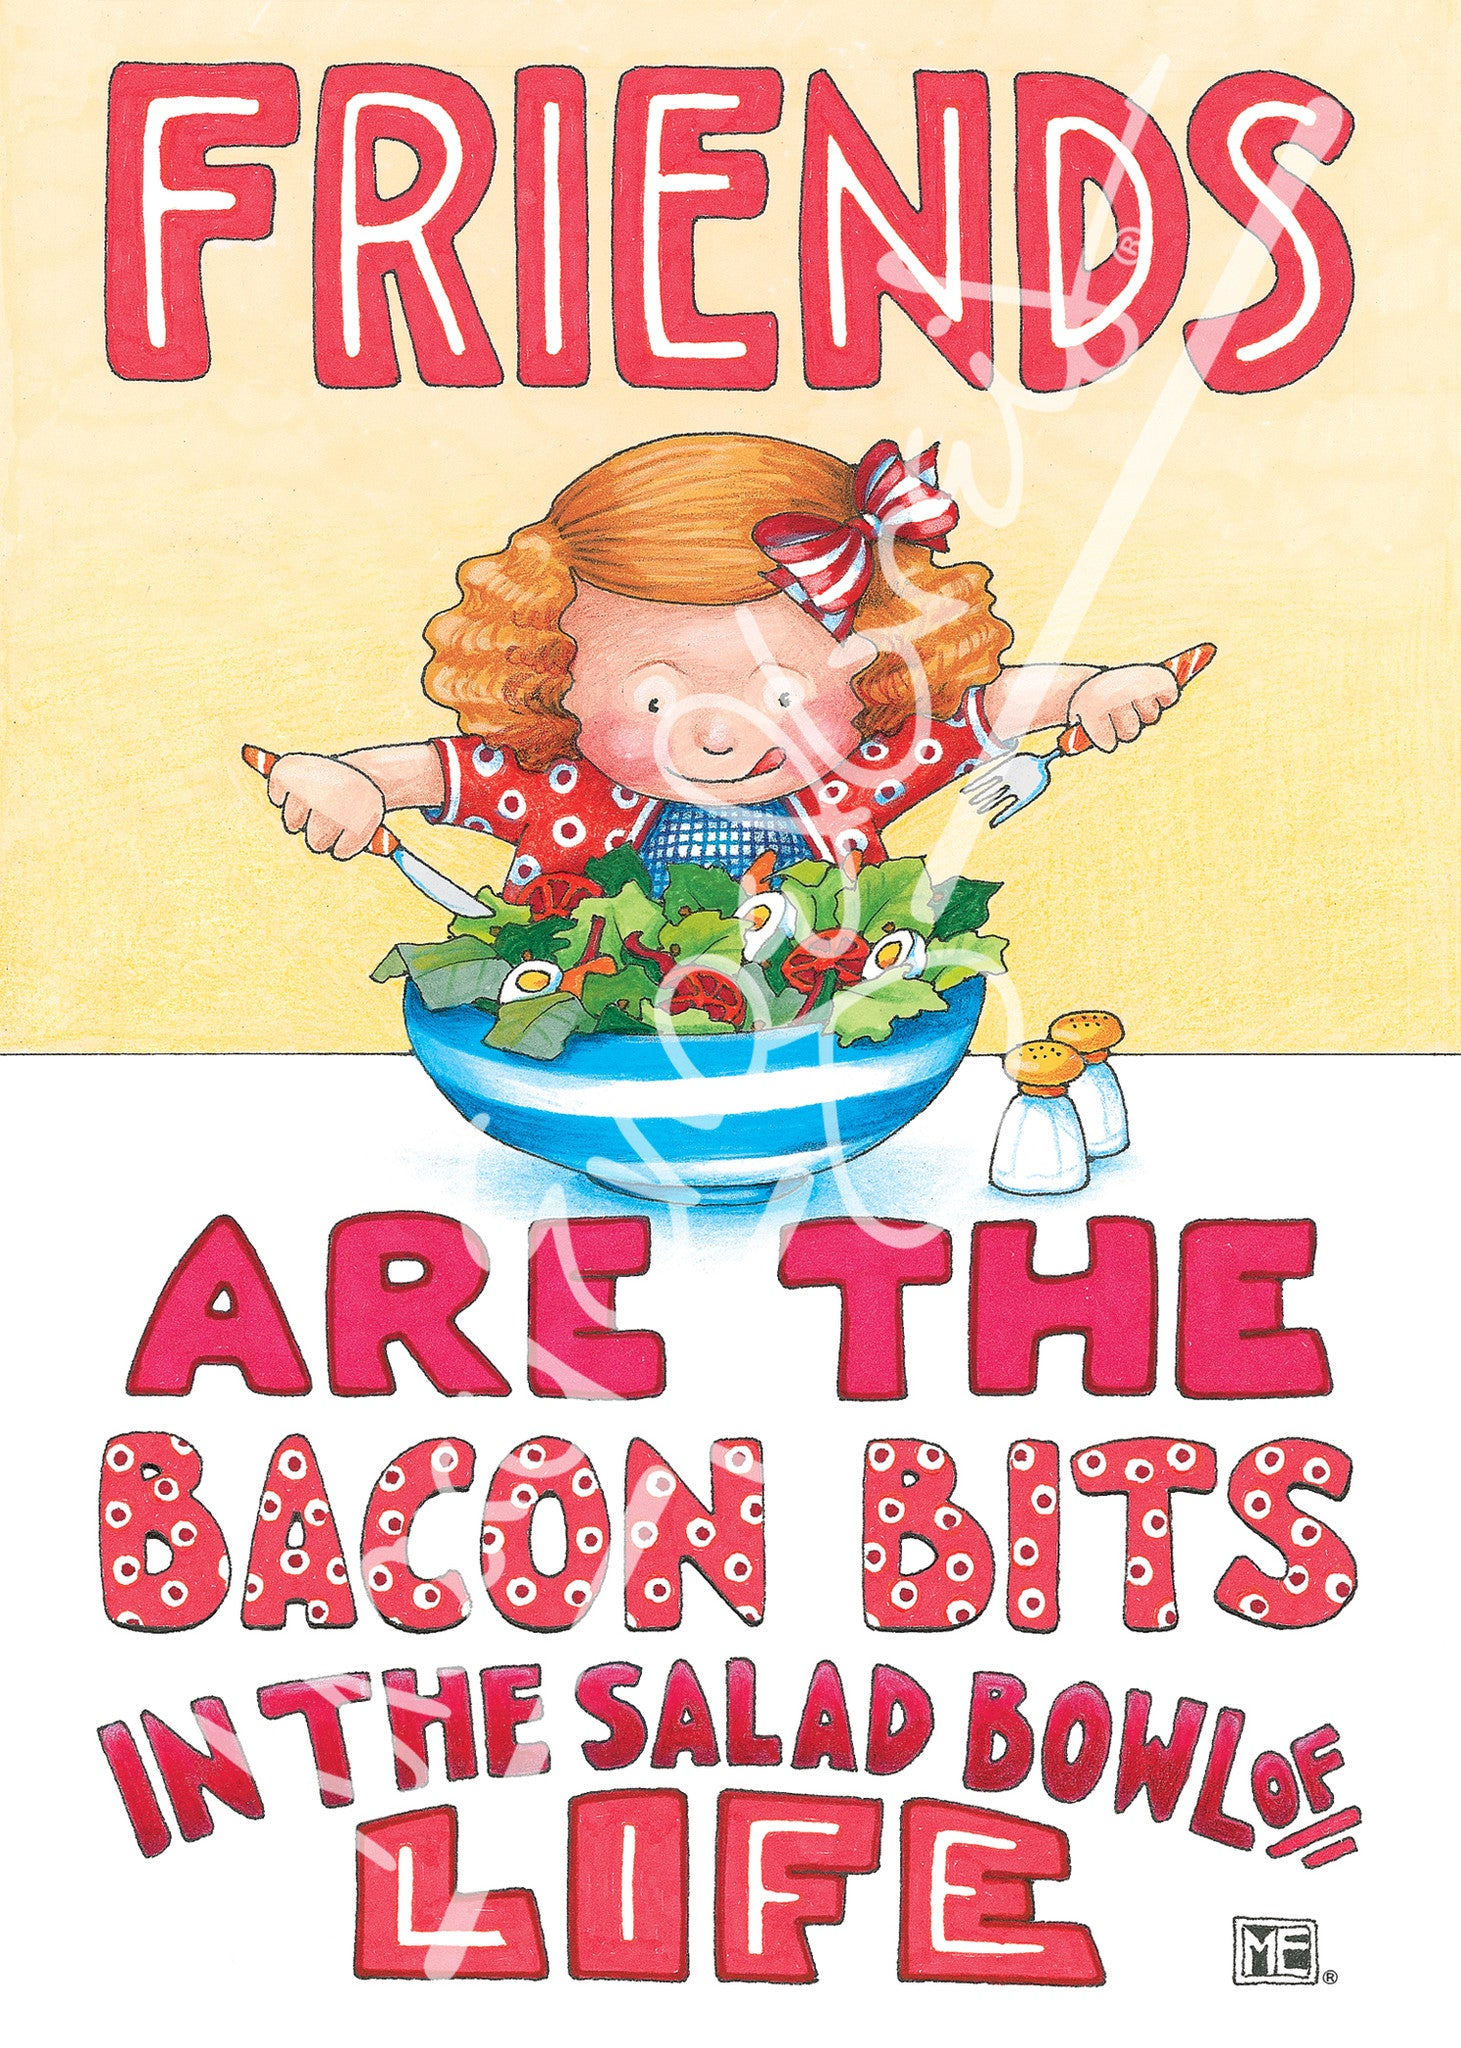 Bacon bits greeting card mary engelbreit bacon bits greeting card bookmarktalkfo Image collections